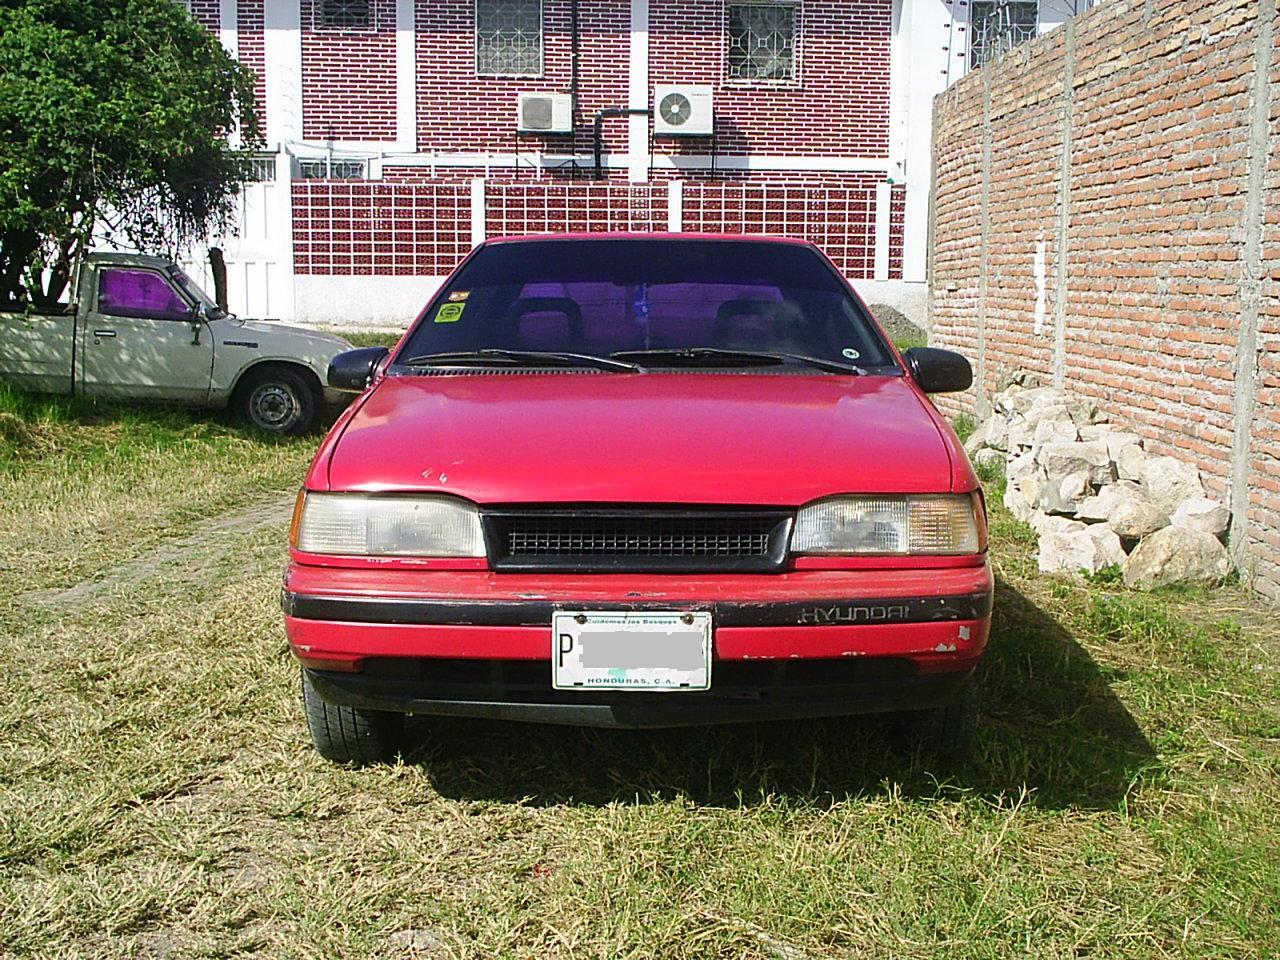 2d6abac59f Another mrgiron1 1990 Hyundai Excel post...4331398 by mrgiron1